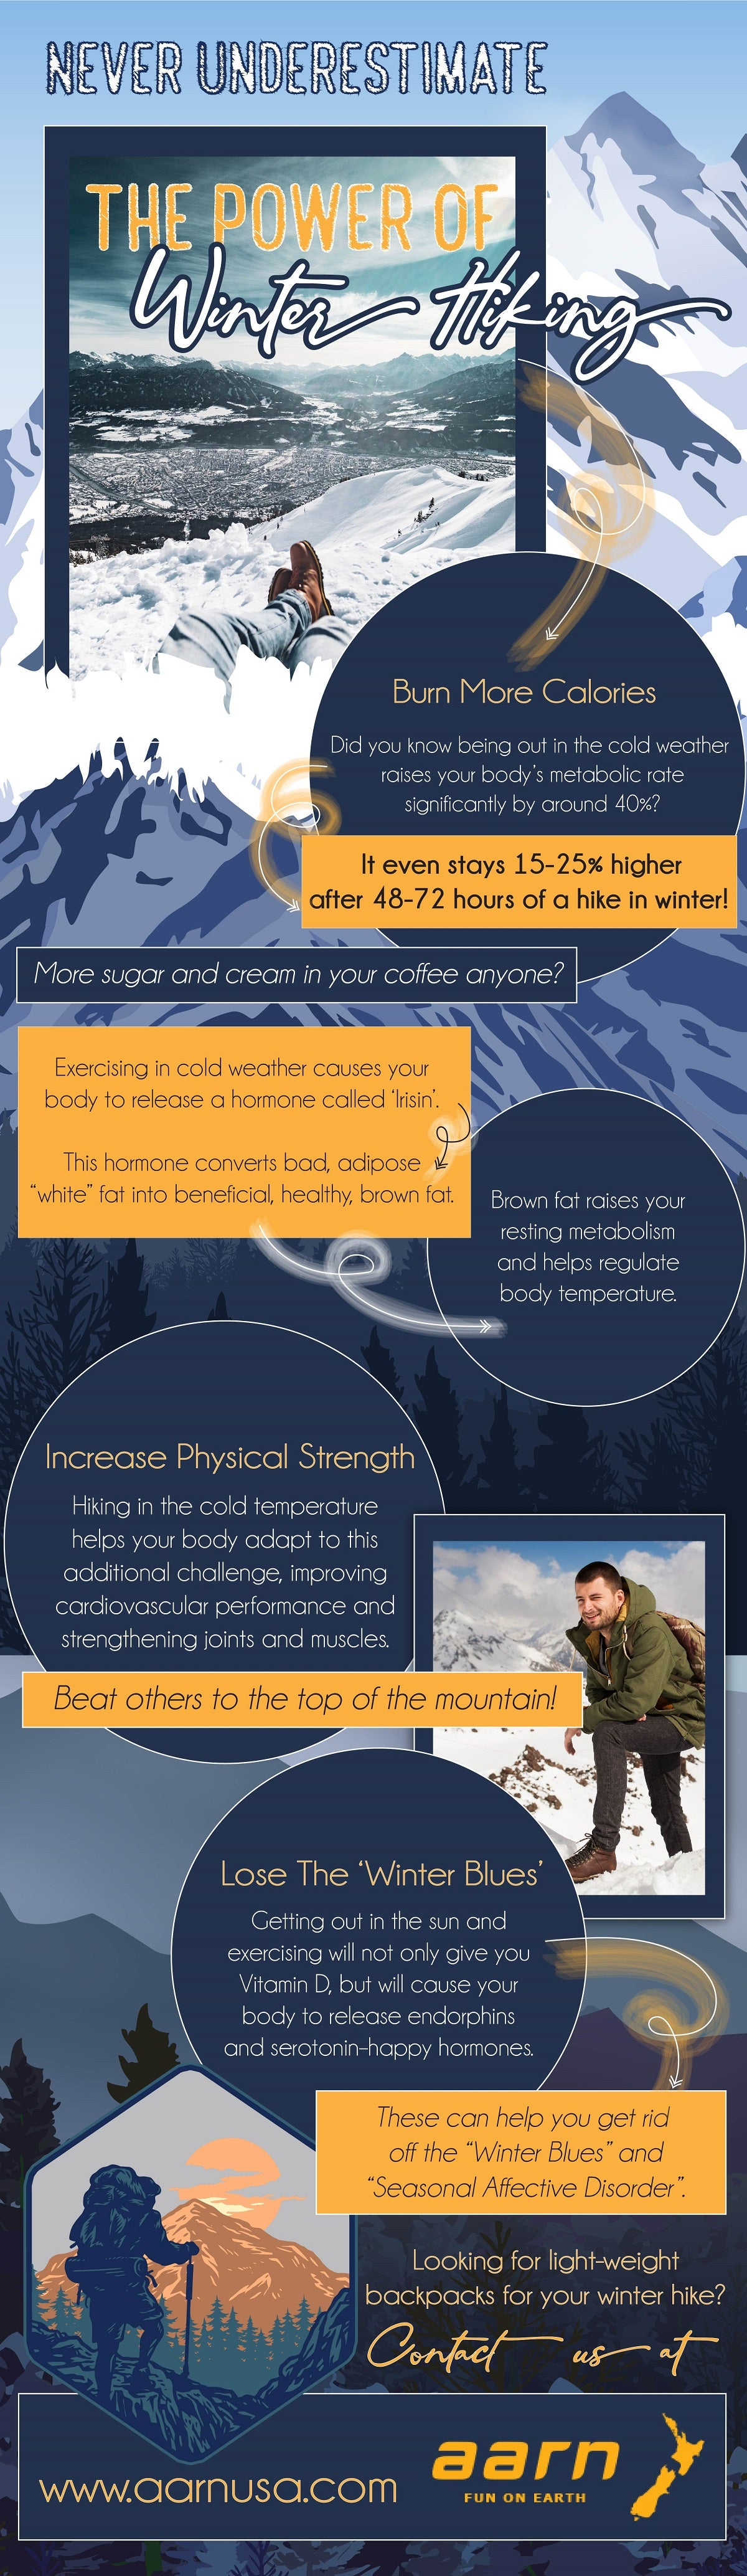 Never Underestimate The Power Of Winter Hiking - Infographic